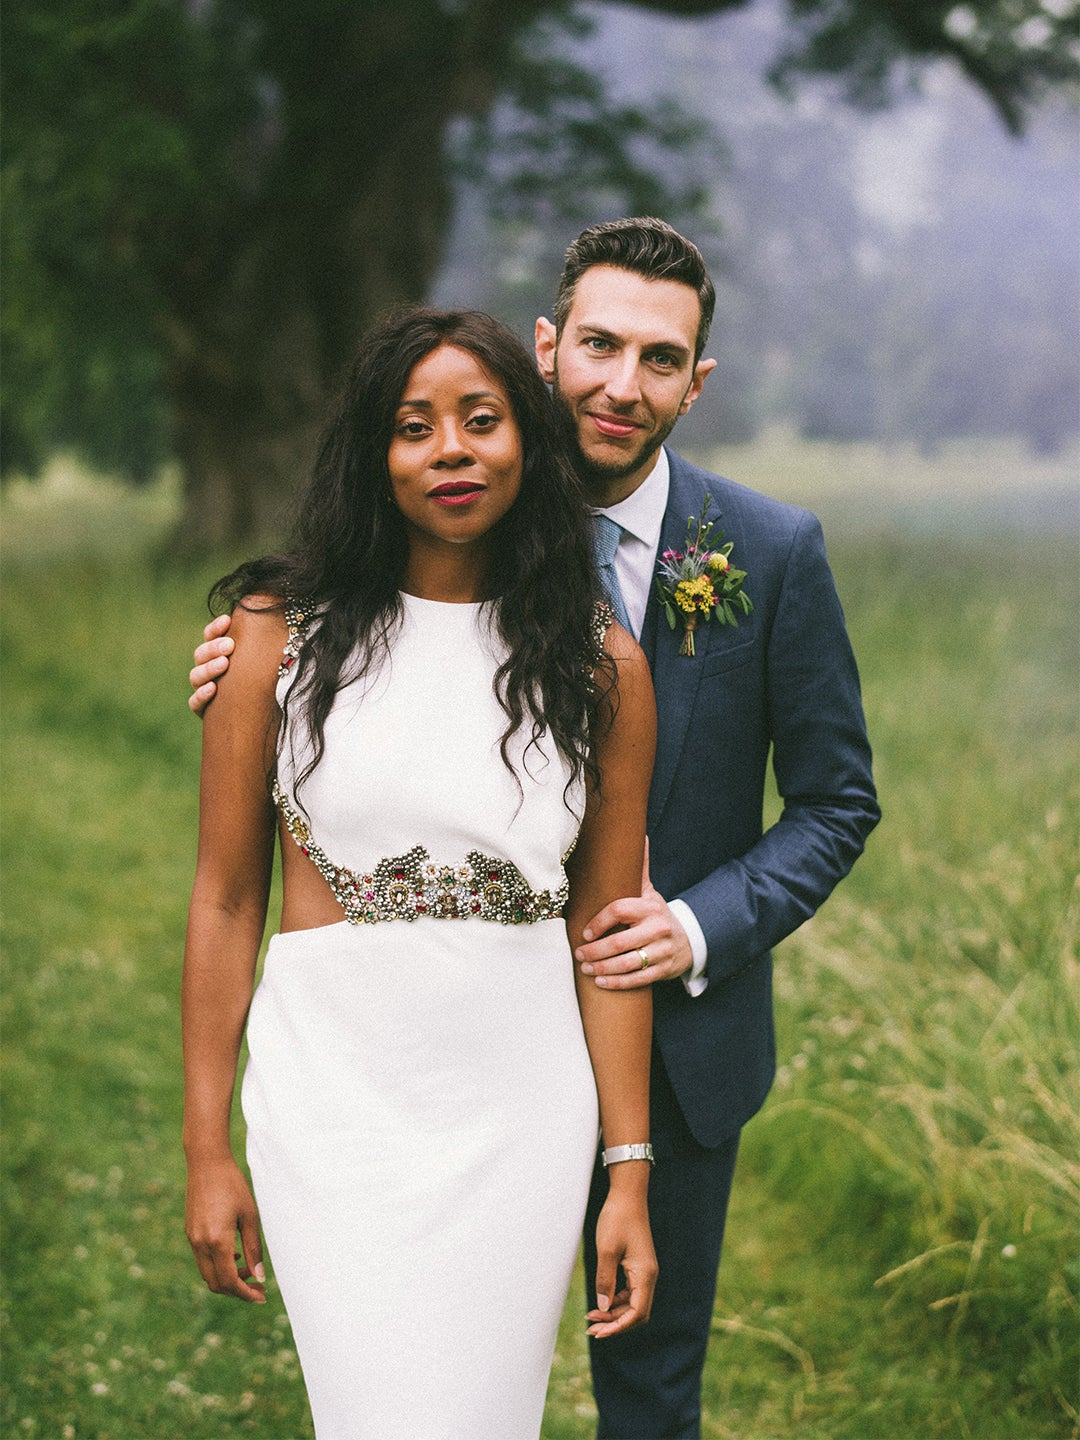 couple posing at their wedding in field